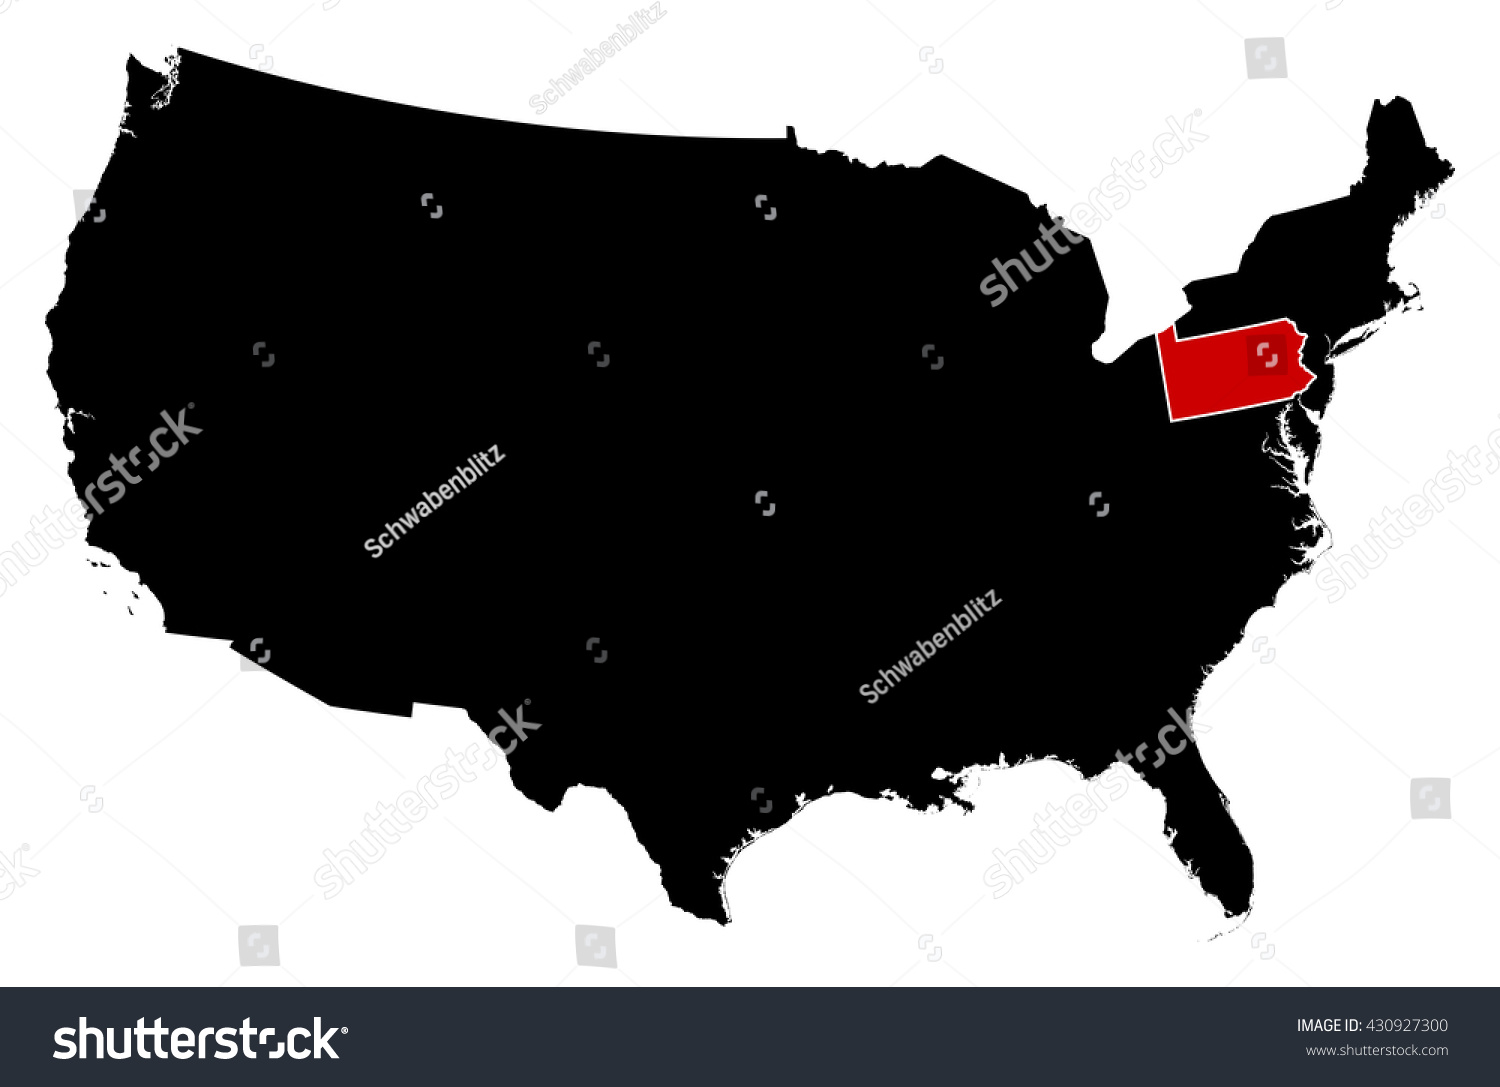 Us map states pennsylvania map of the united states 1848 us map states pennsylvania map united states pennsylvania stock vector 430927300 shutterstock sciox Image collections